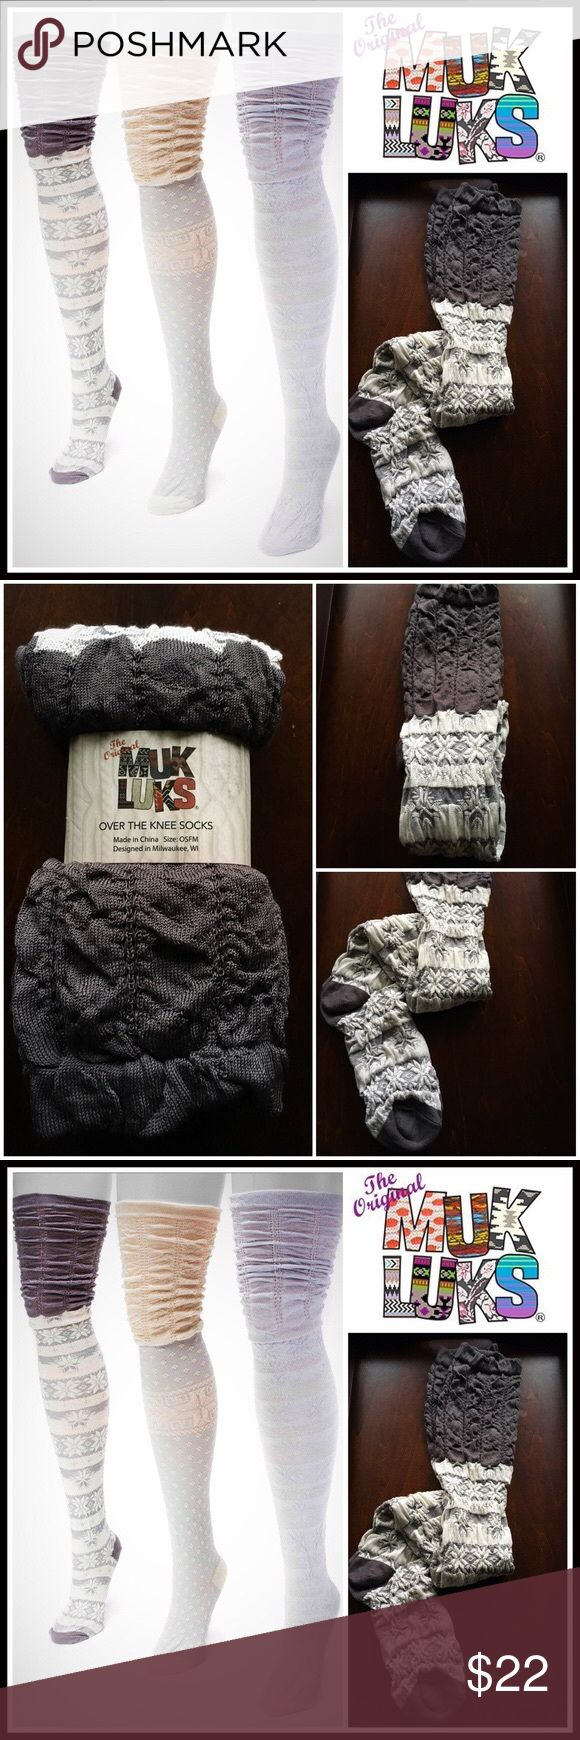 """MUK LUKS BOOT SOCKS Tall Over the Knee Socks 💟NEW WITH TAGS💟   MUK LUKS BOOT SOCKS Tall Over the Knee Thigh Highs   * Super soft, high quality textured & embroidered fabric   * Stretch-to-fit construction w/crochet lace ruffle & ribbed cuffs   * Over the knee length & thigh high   * One size fits most, sock sizes 9-11   * Stay up elasticize cuff style   * Approx 25"""" long   FABRIC-Microfiber, nylon, 3% spandex; Machine wash cold  COLOR-Charcoal, ivory, Heather grey   ❌NO TRADES❌ ✅BUNDLE…"""